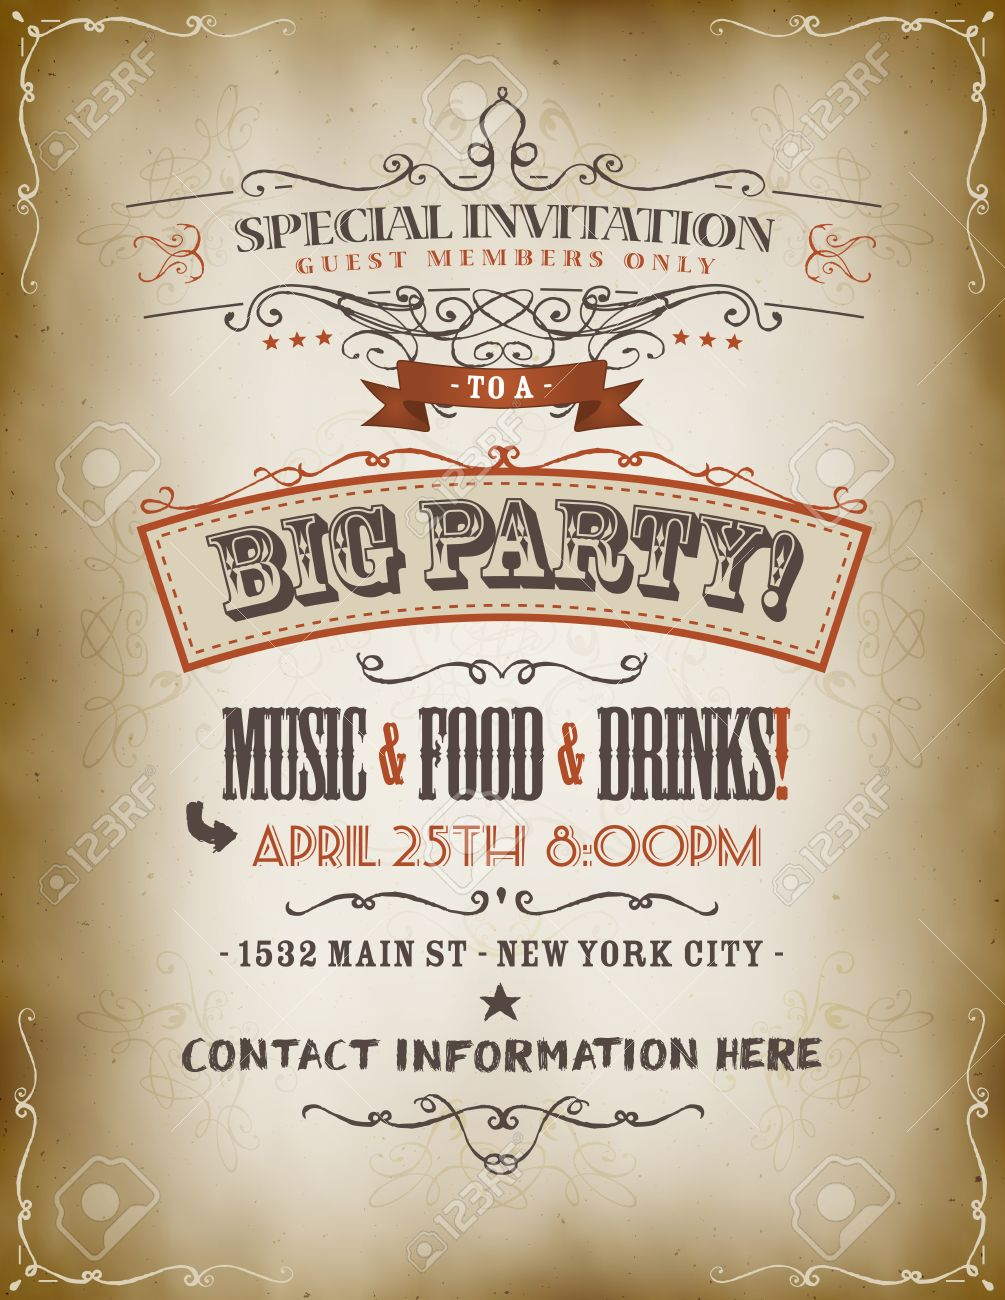 illustration of a retro vintage invitation poster to a big party